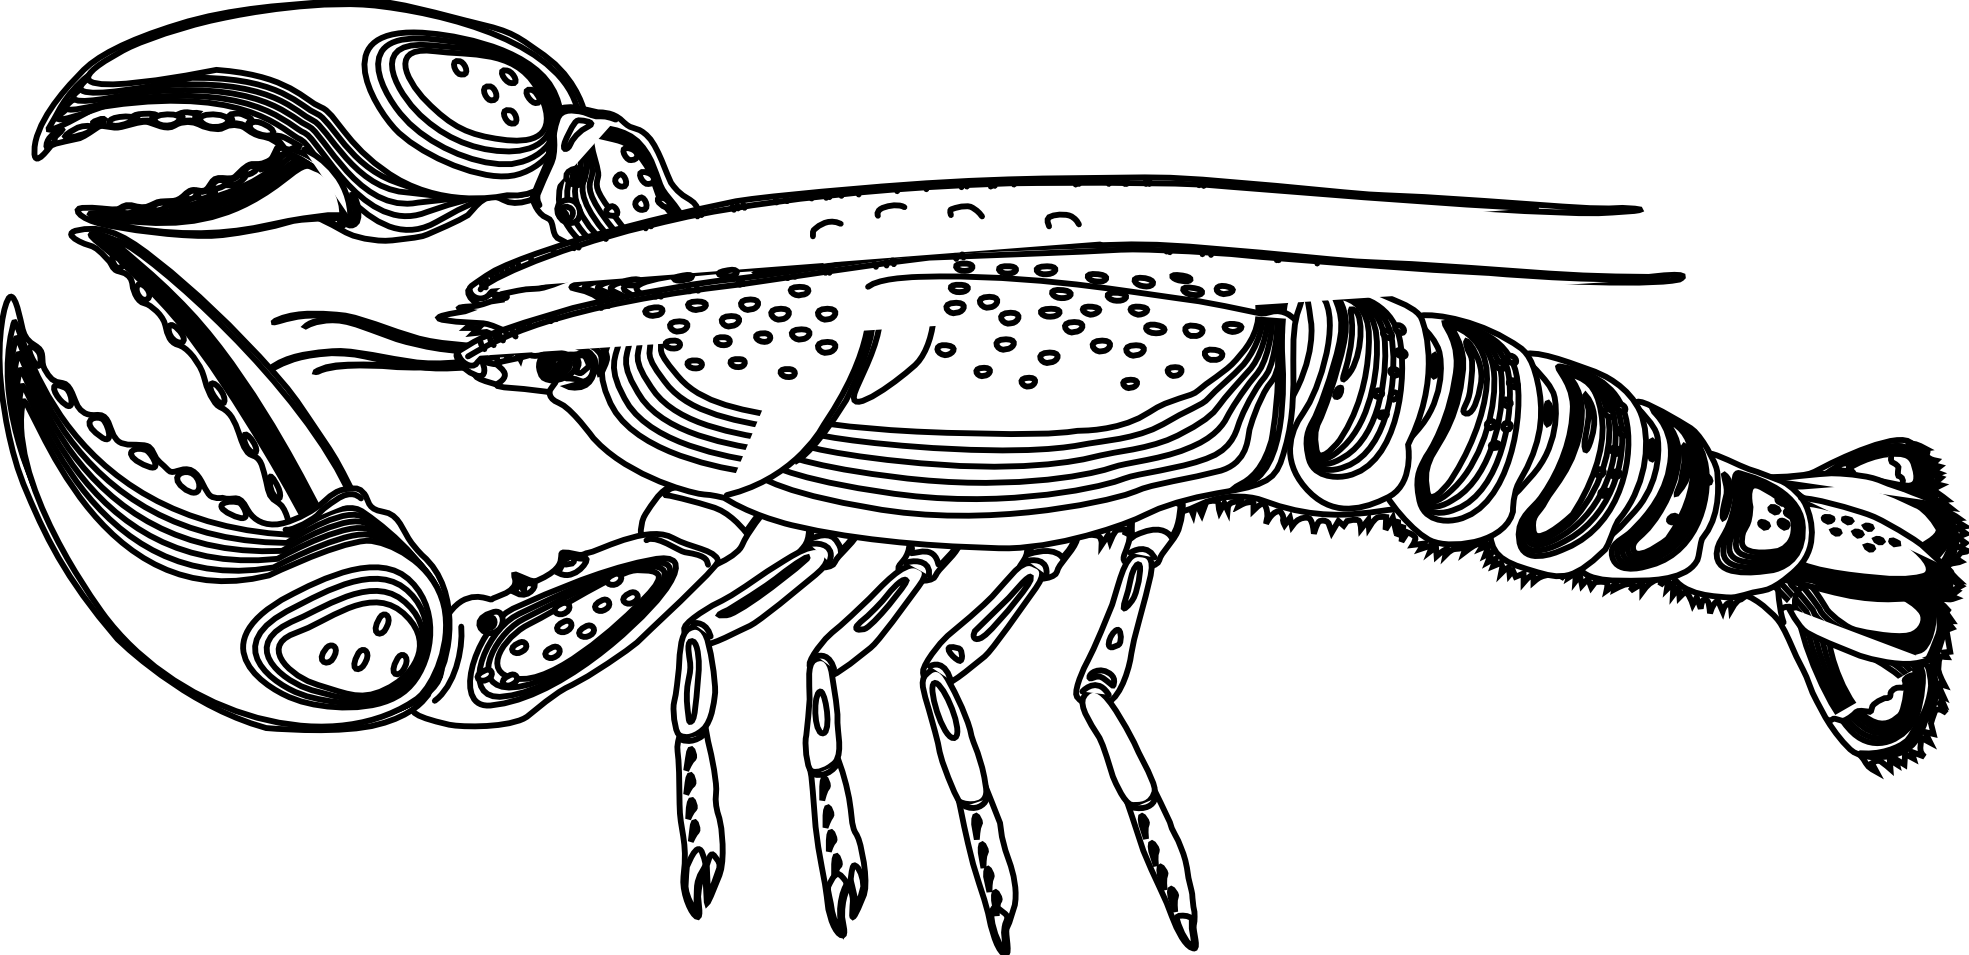 svg black and white library Png transparent pluspngcom artfavor. Lobster clipart black and white